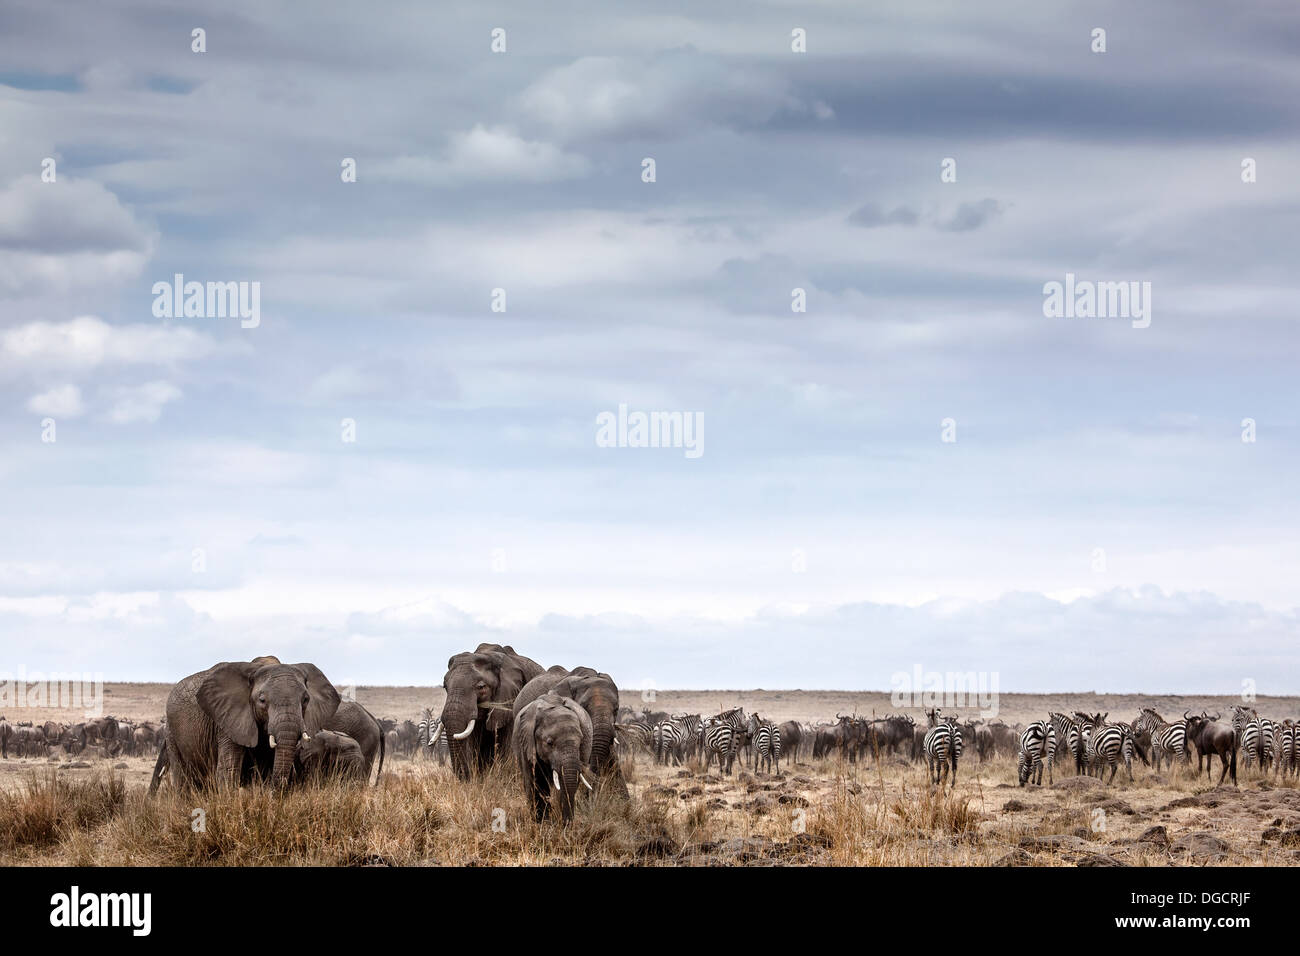 A herd or elephants graze on the open veld - Stock Image